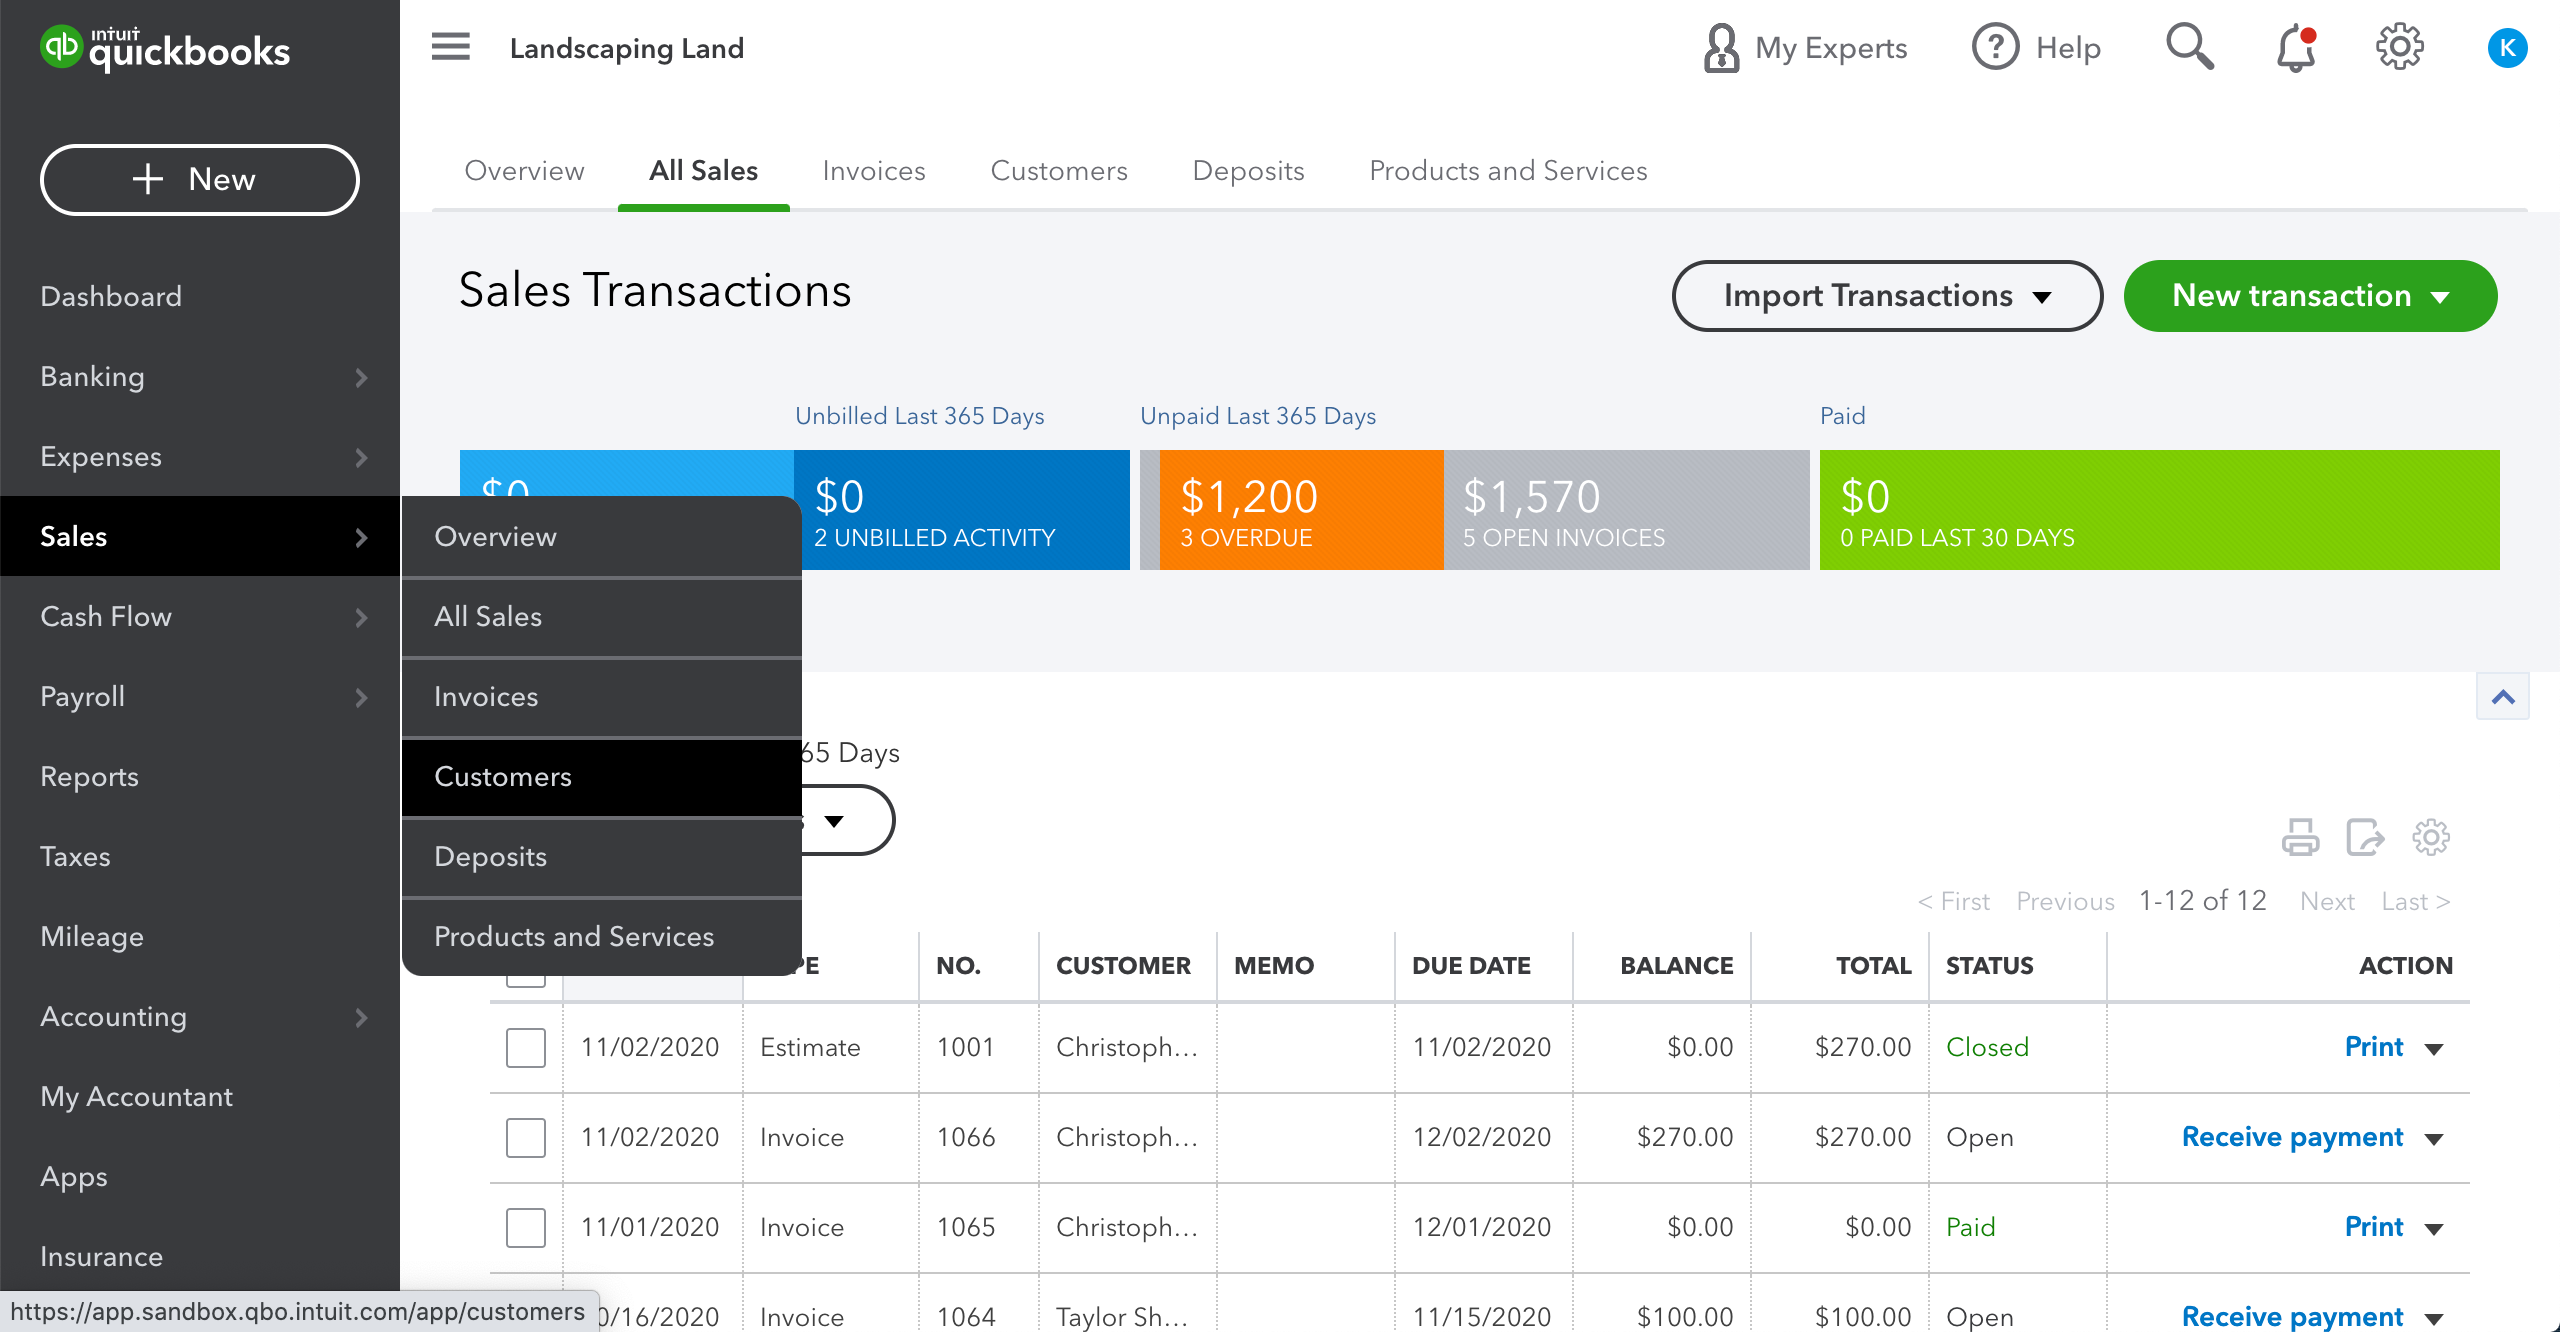 quickbooks-dashboard-sales-customers.png